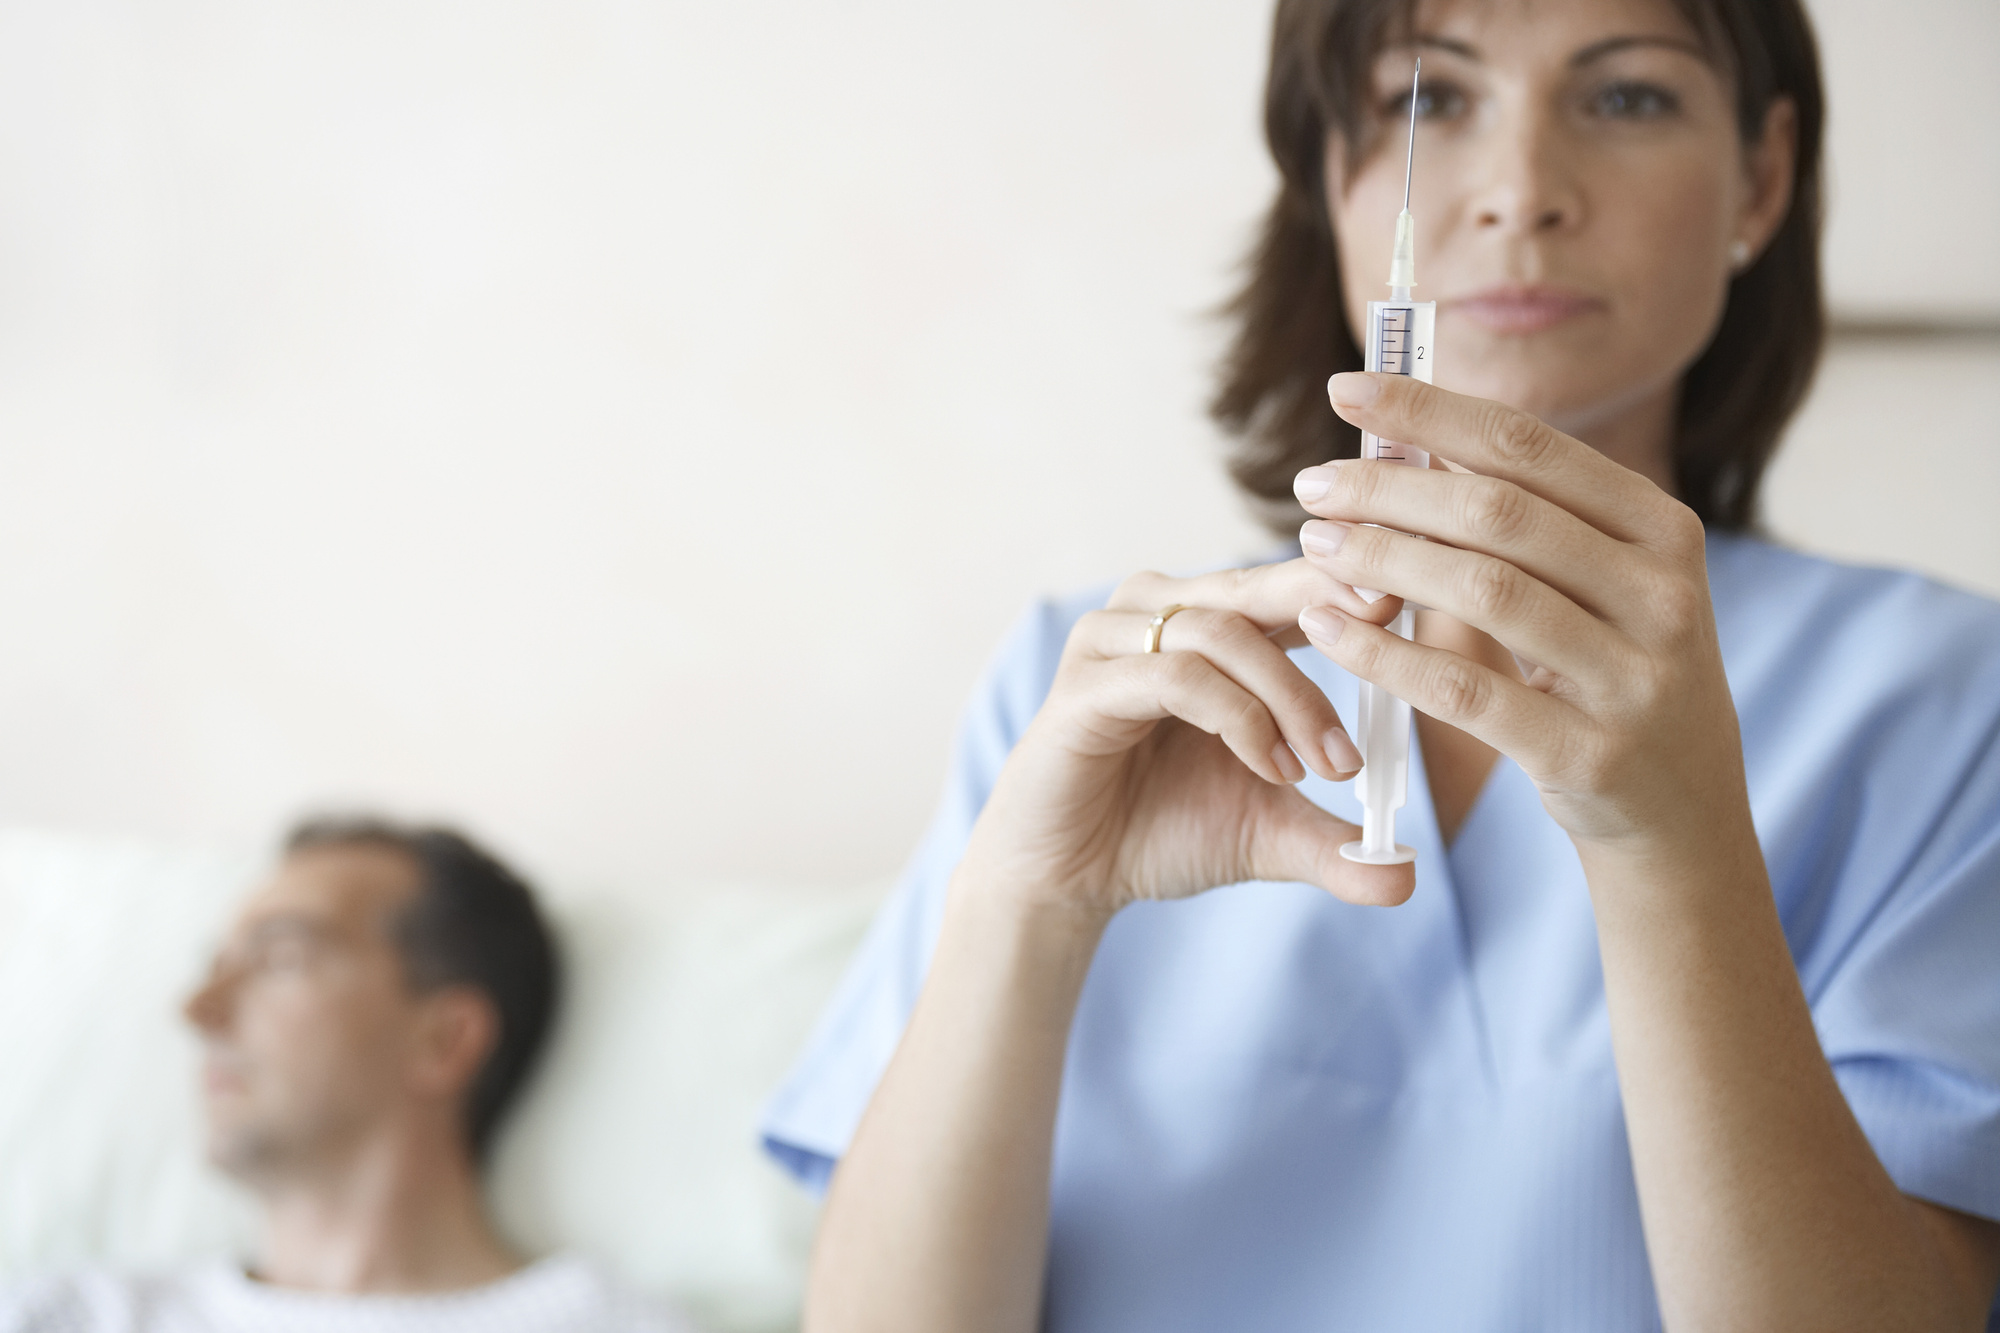 Blurred nurse preparing syringe for Injection by male patient in bed